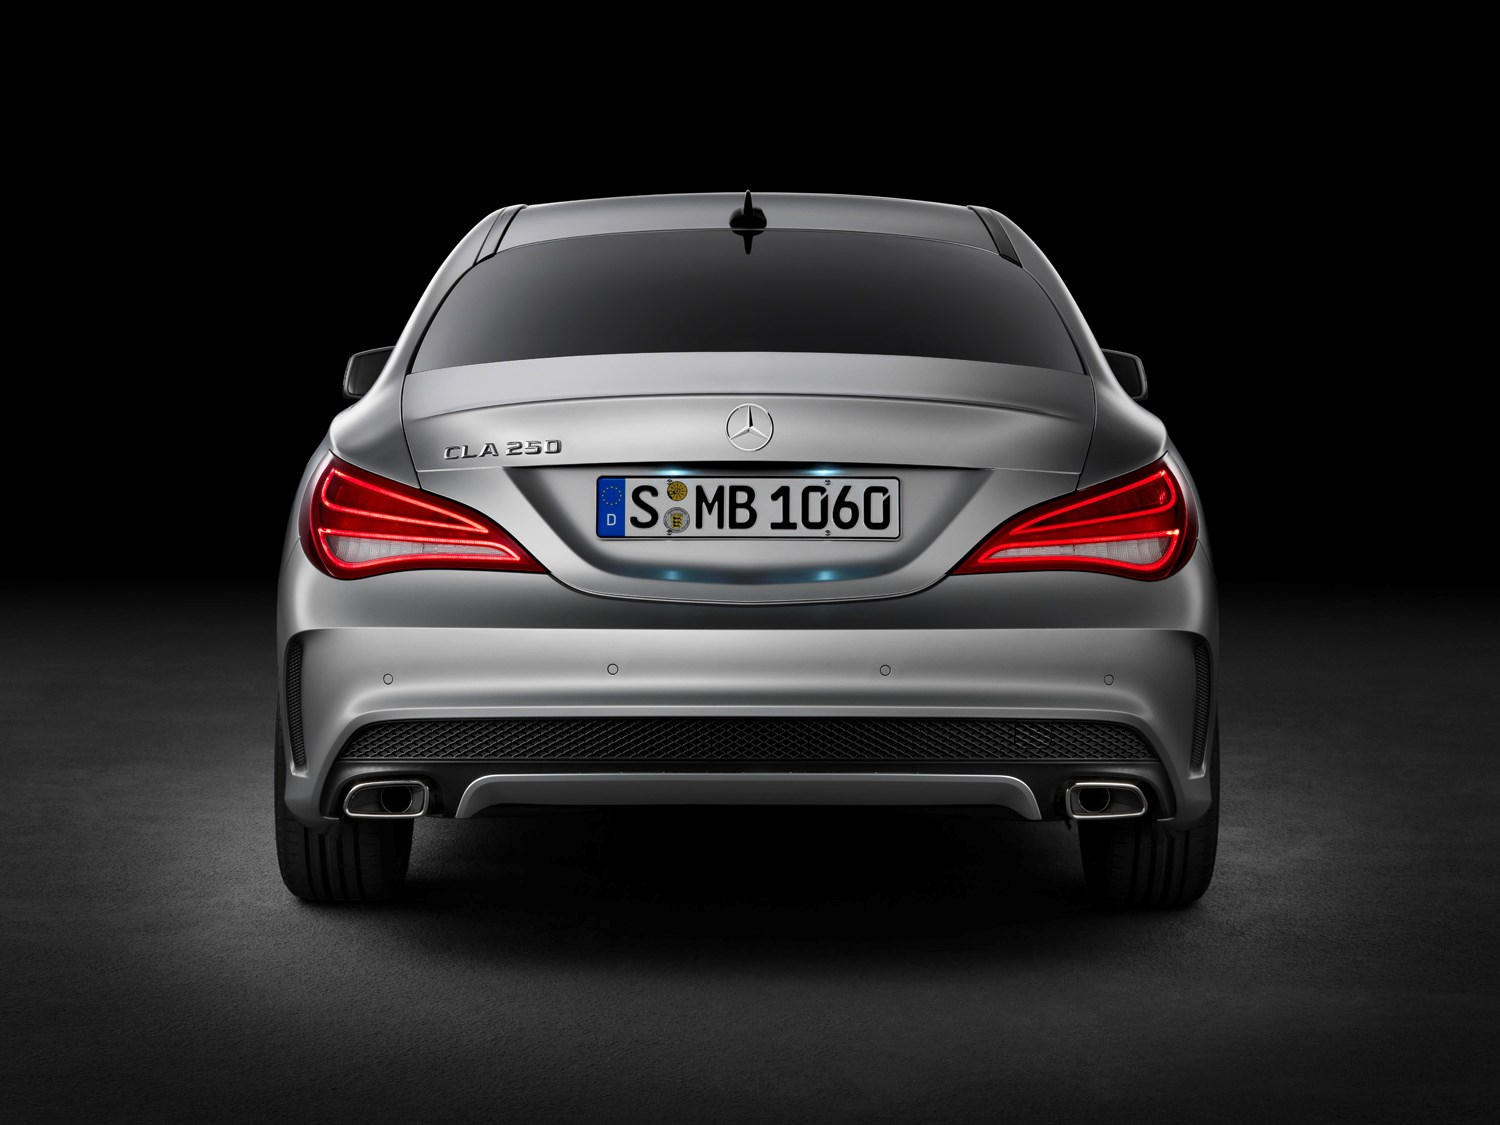 mercedes-benz cla-class coupe (2013 - ) features, equipment and